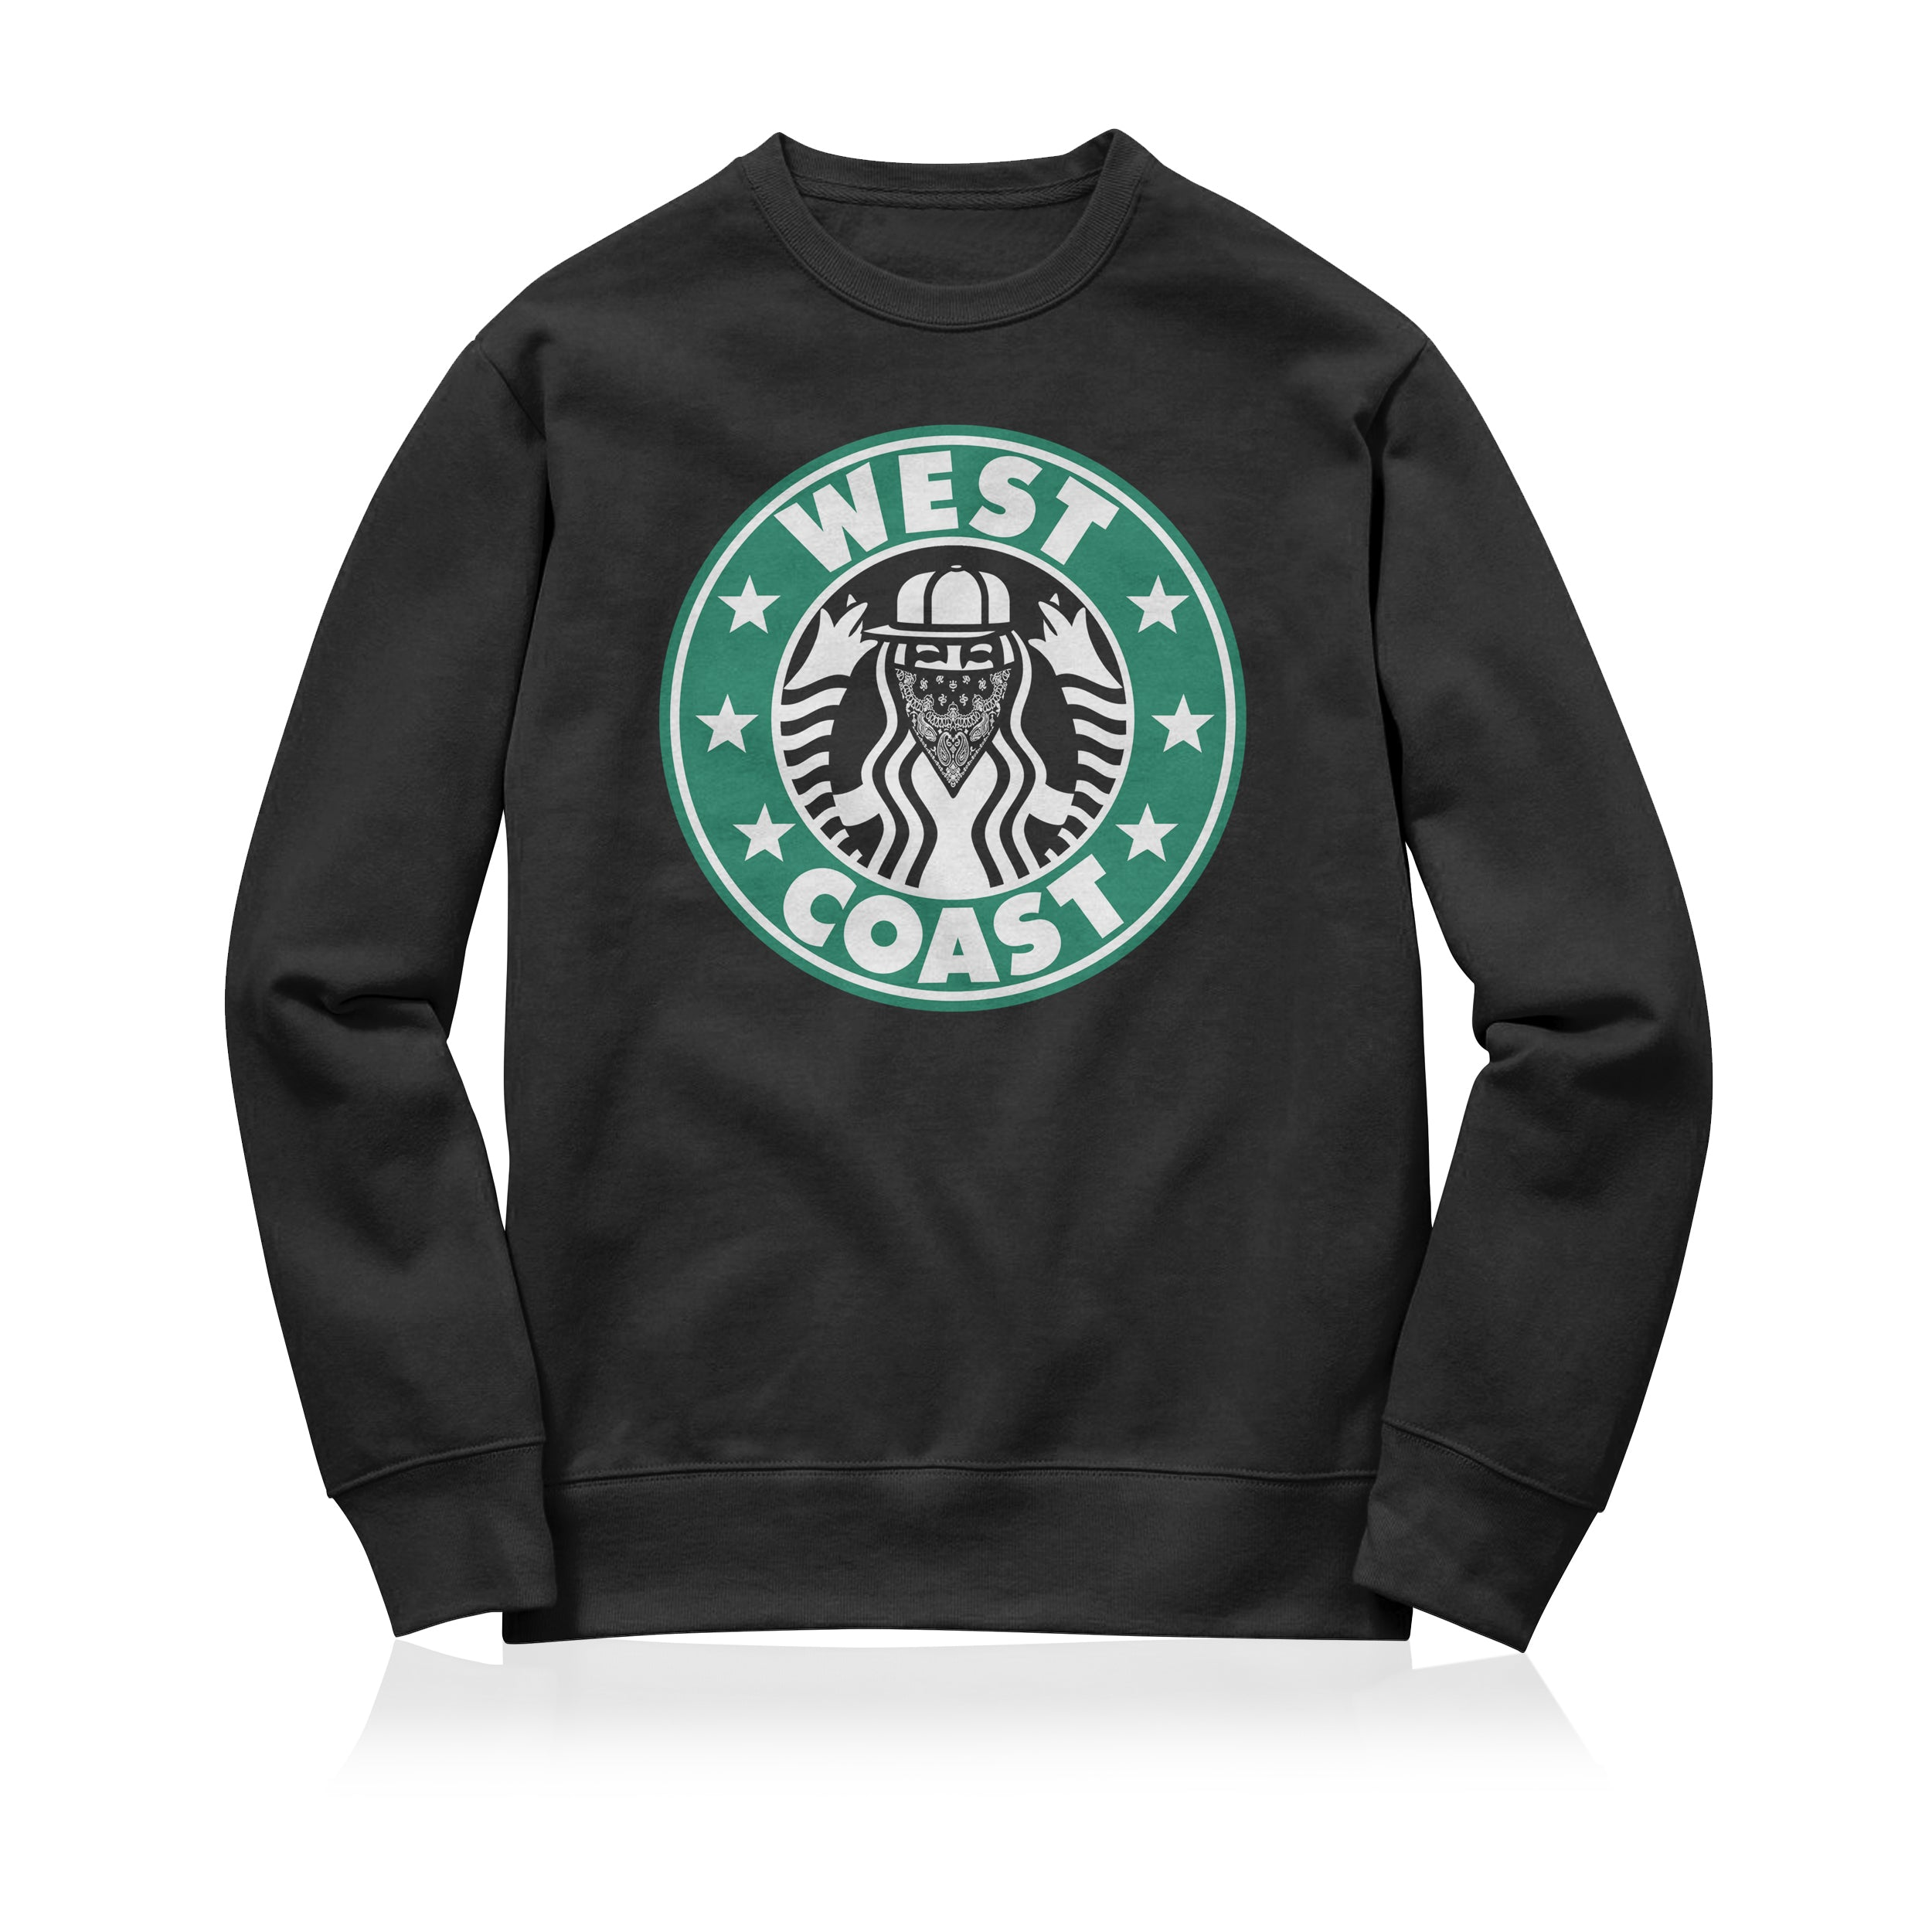 Sneaky West Coast Unisex Adult Sweatshirt Black